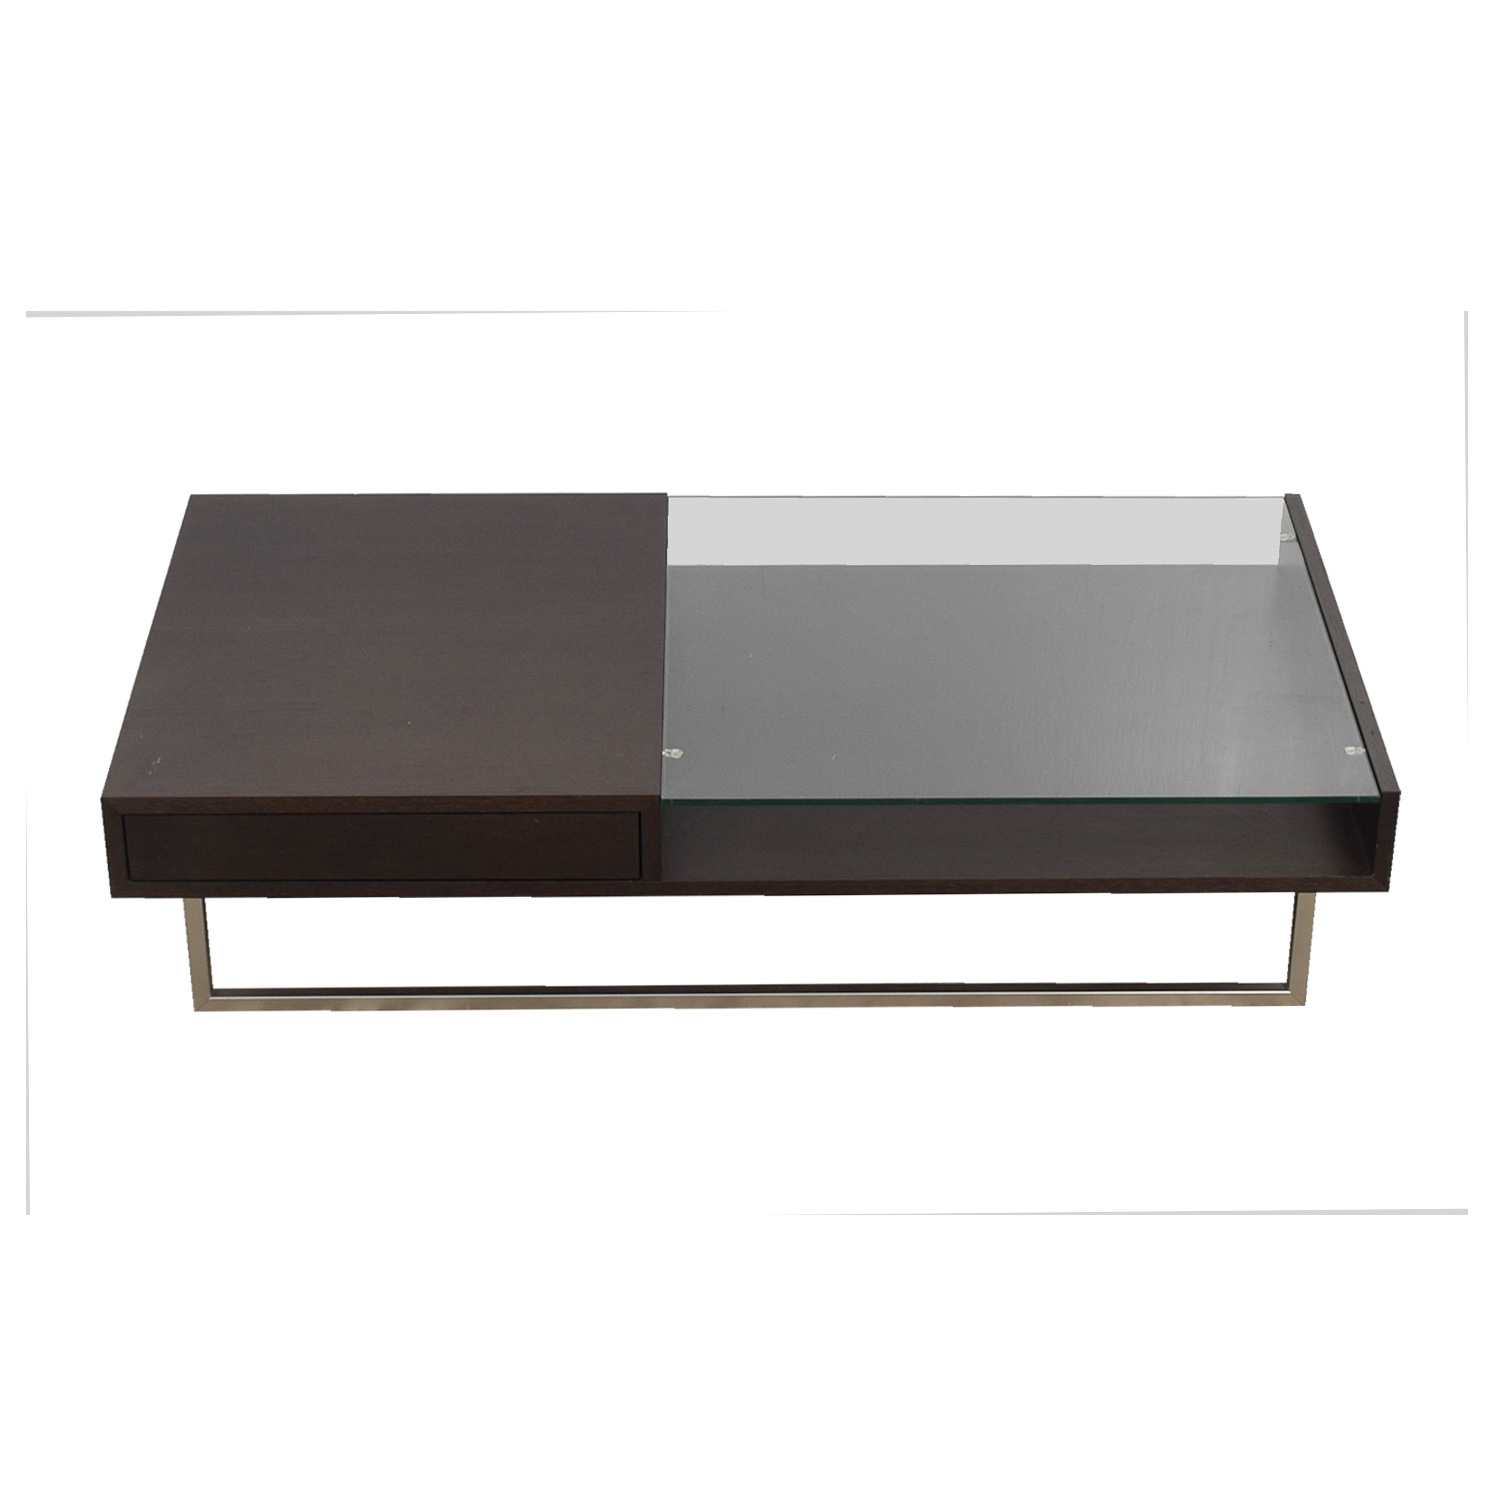 Natuzzi Walnut Glass Coffee Table / Coffee Tables